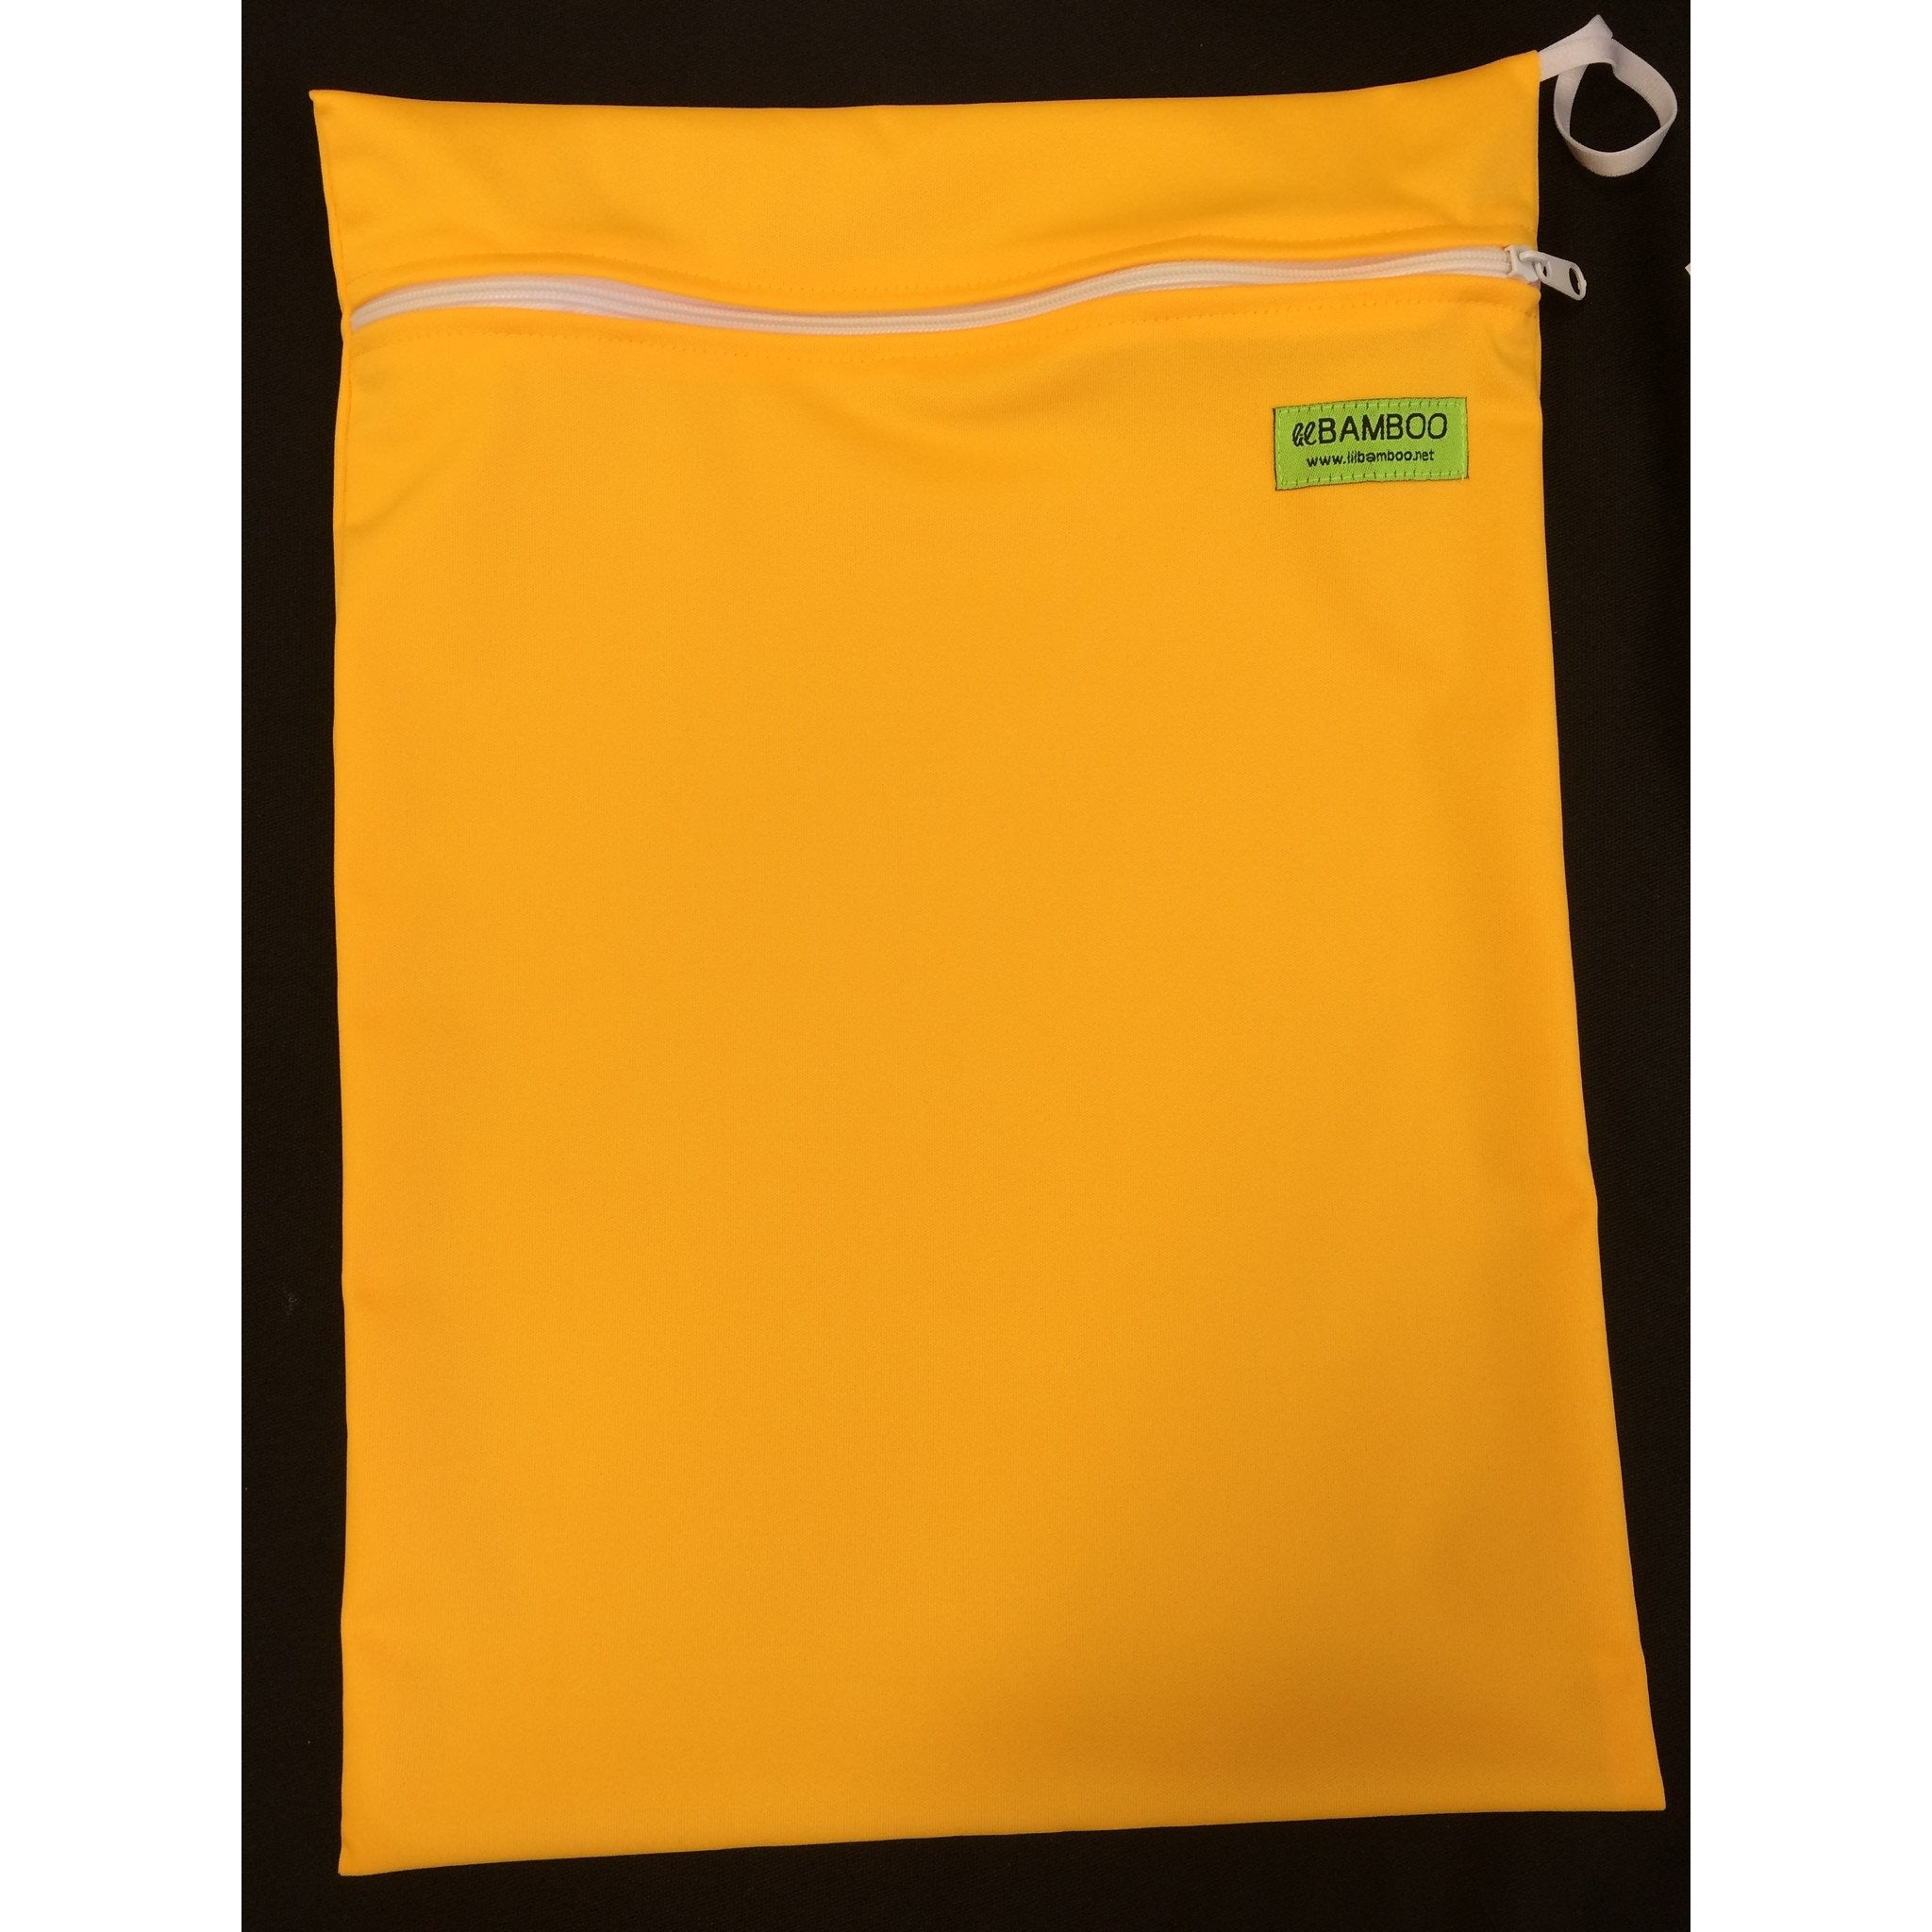 Lil Bamboo small wetbag- dark yellow